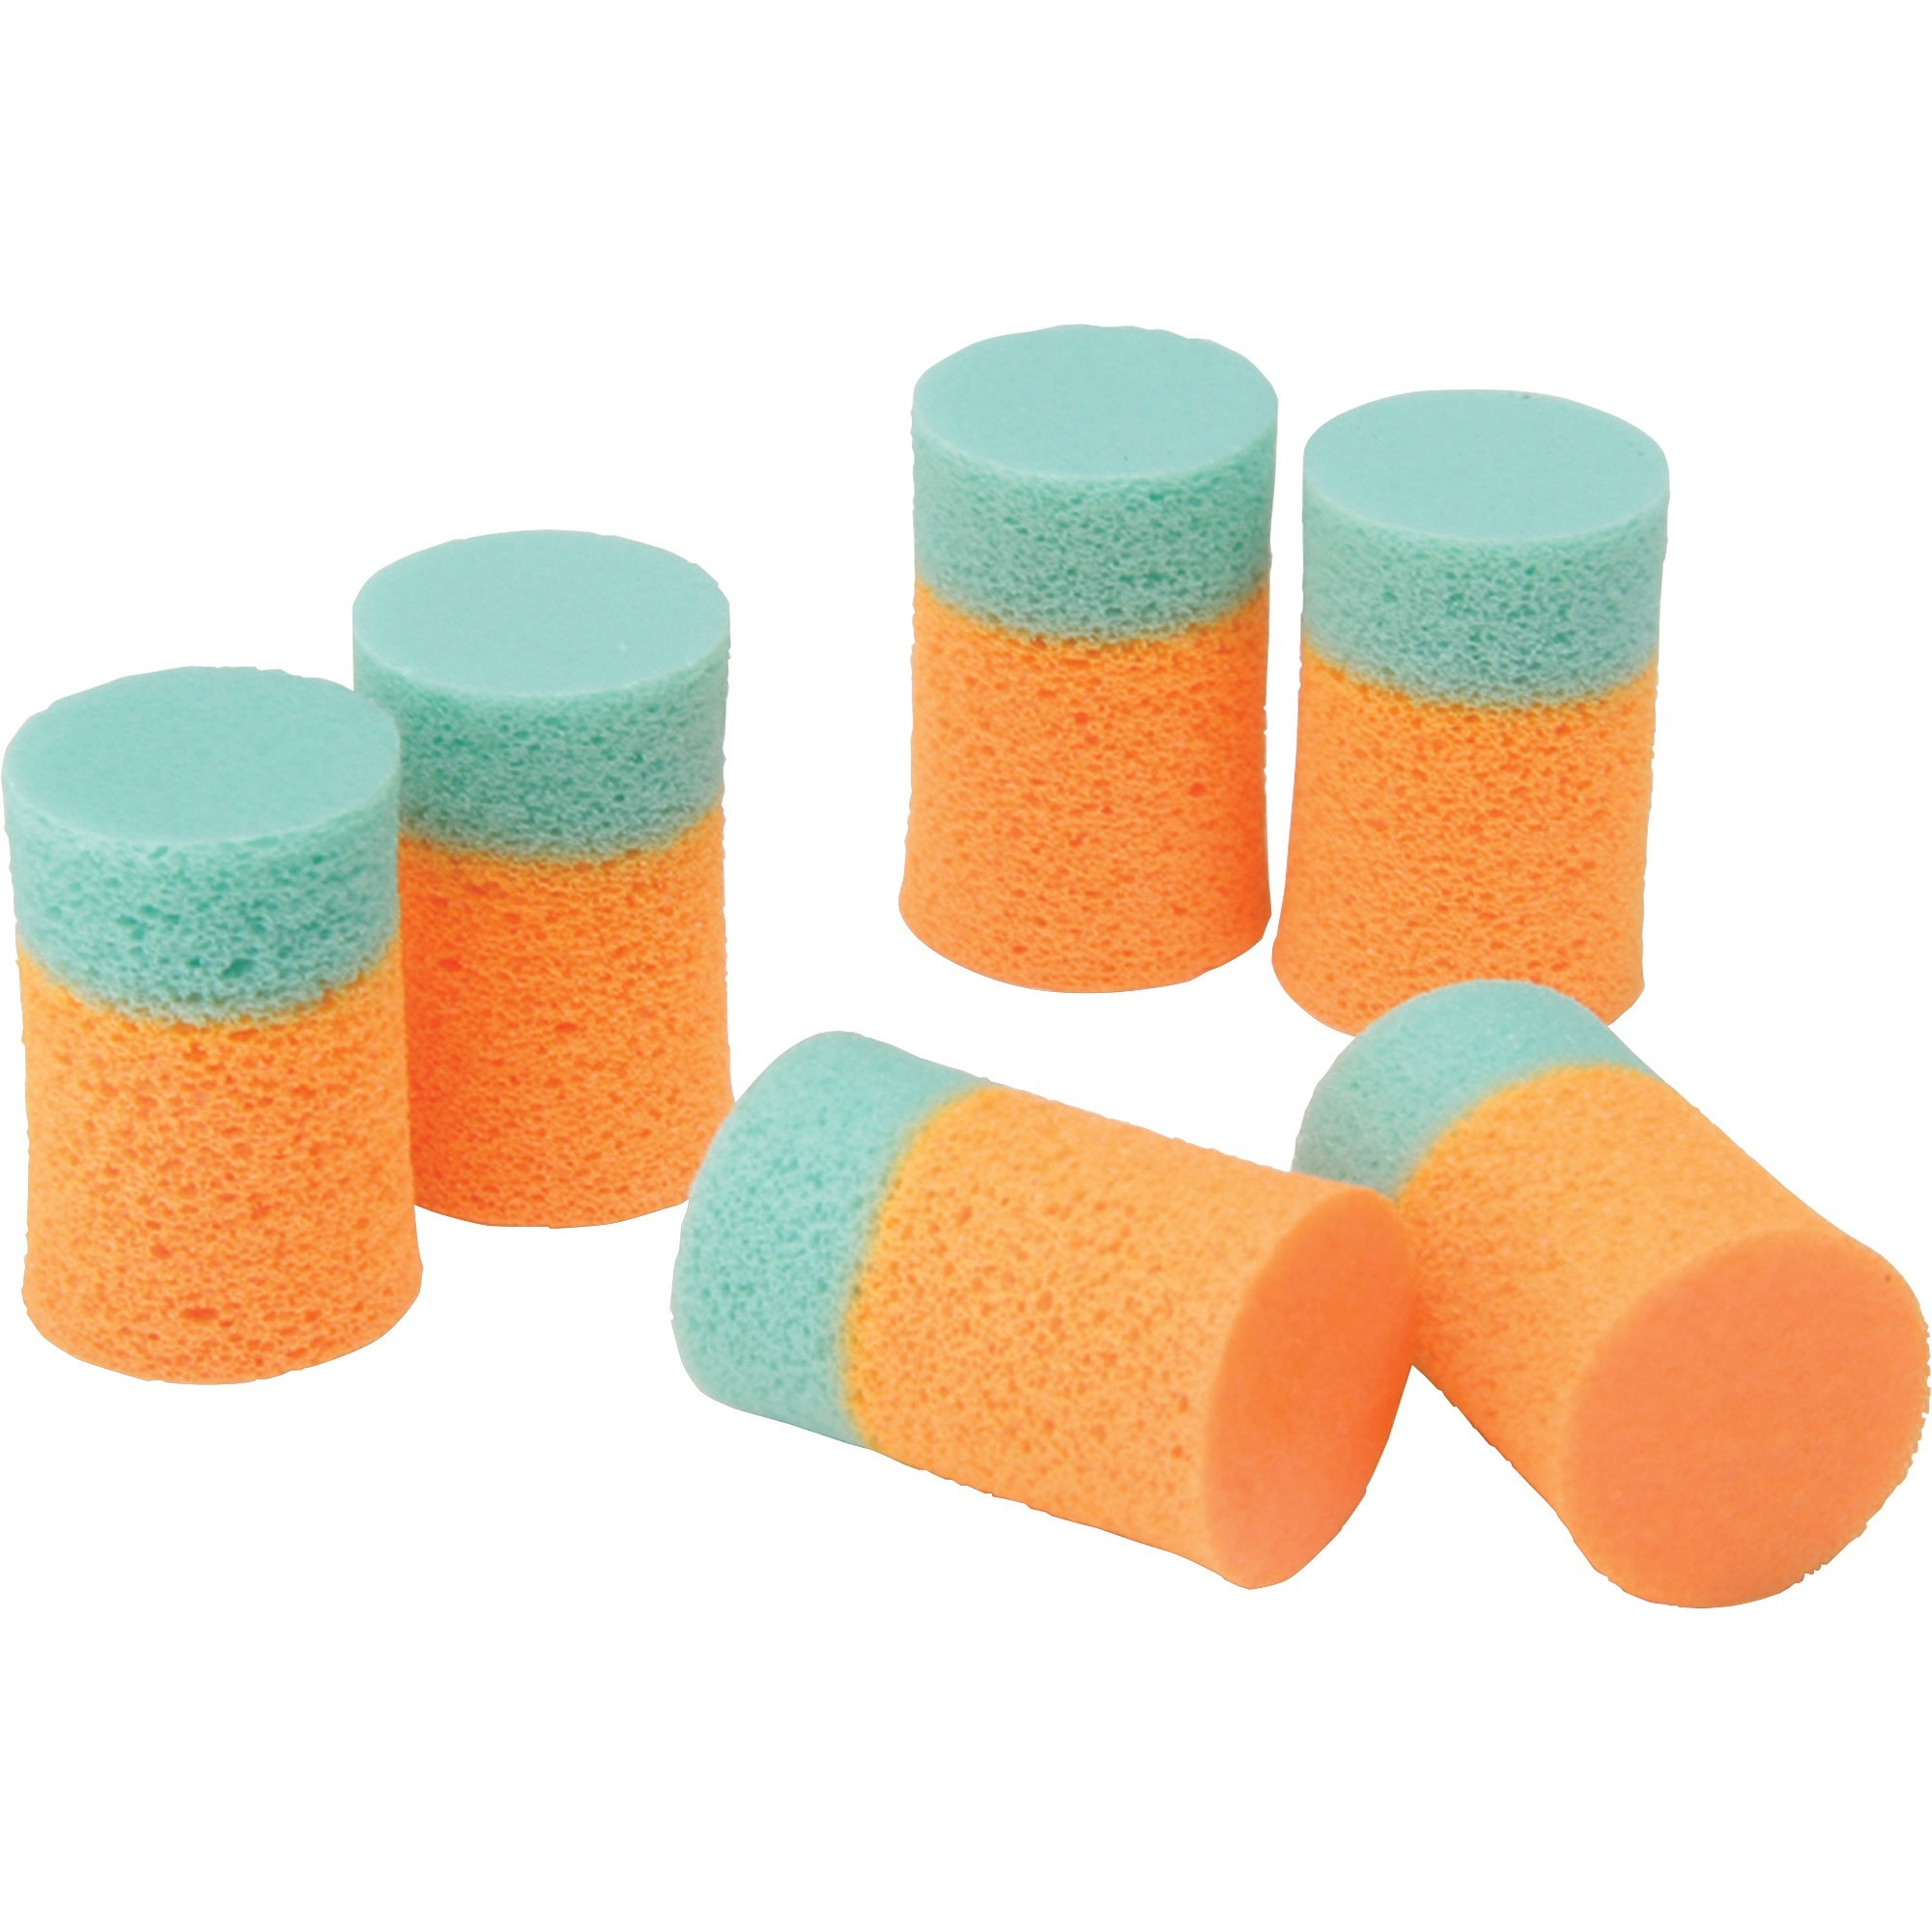 SKILCRAFT, NSN1376345, Hearing Protection Earplug, 400 / Box, Light Green,Fluorescent Orange